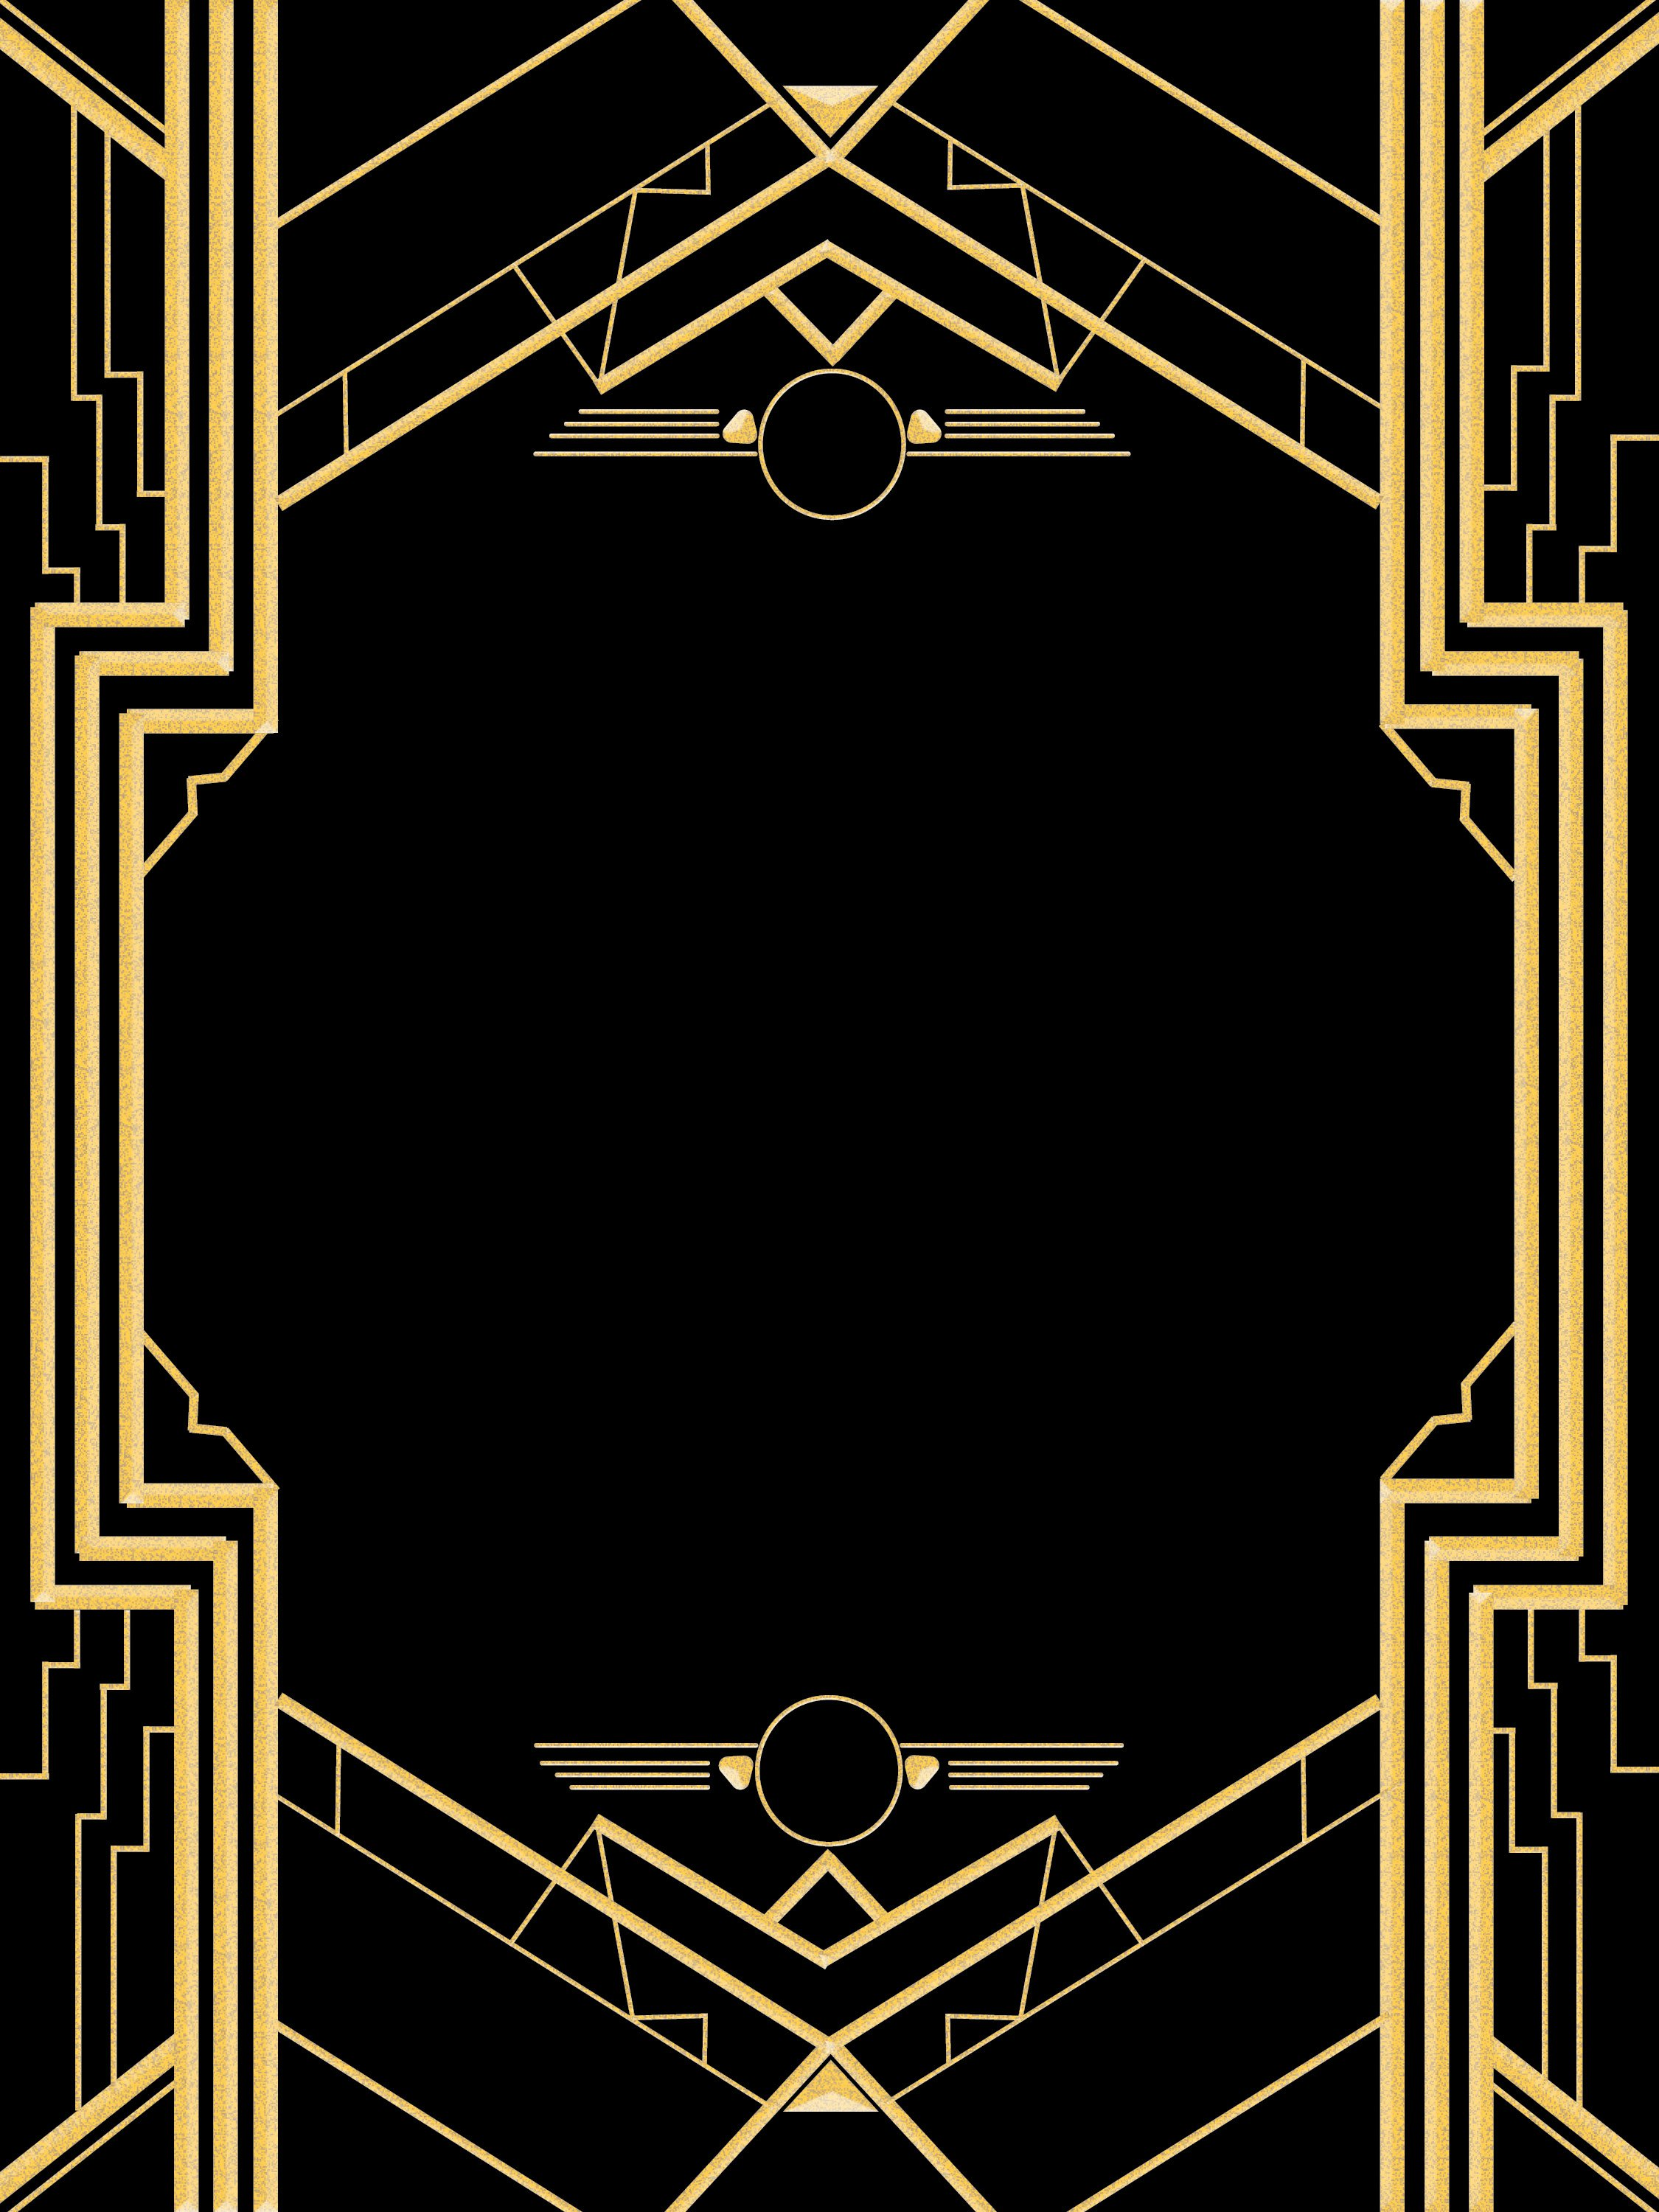 great gatsby wedding invitations great gatsby wedding invitations Great Gatsby Wedding Invitations and get inspiration to create nice invitation ideas